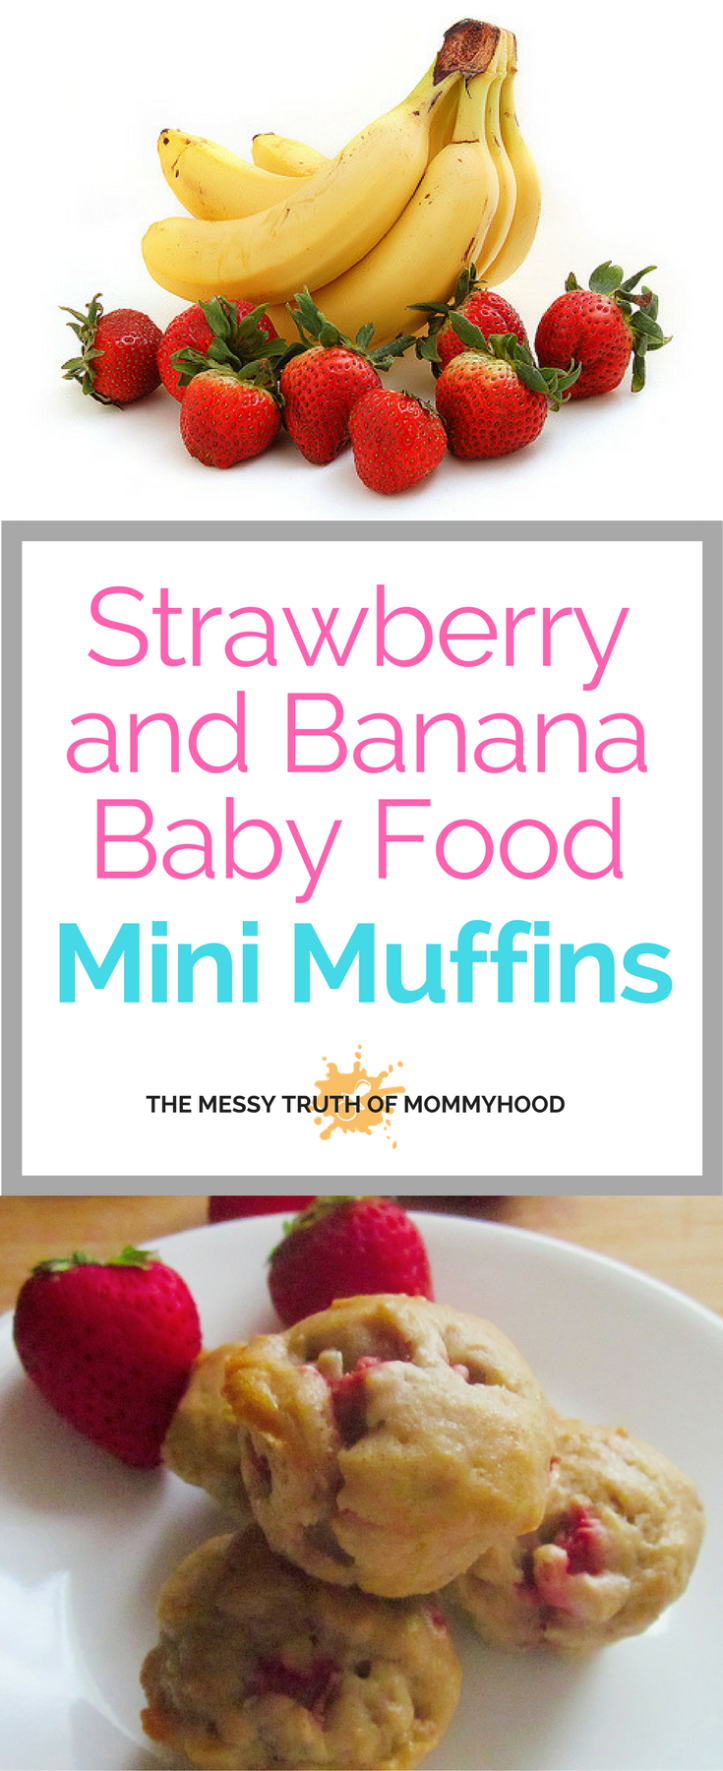 Strawberry-Banana Mini Breakfast Muffins